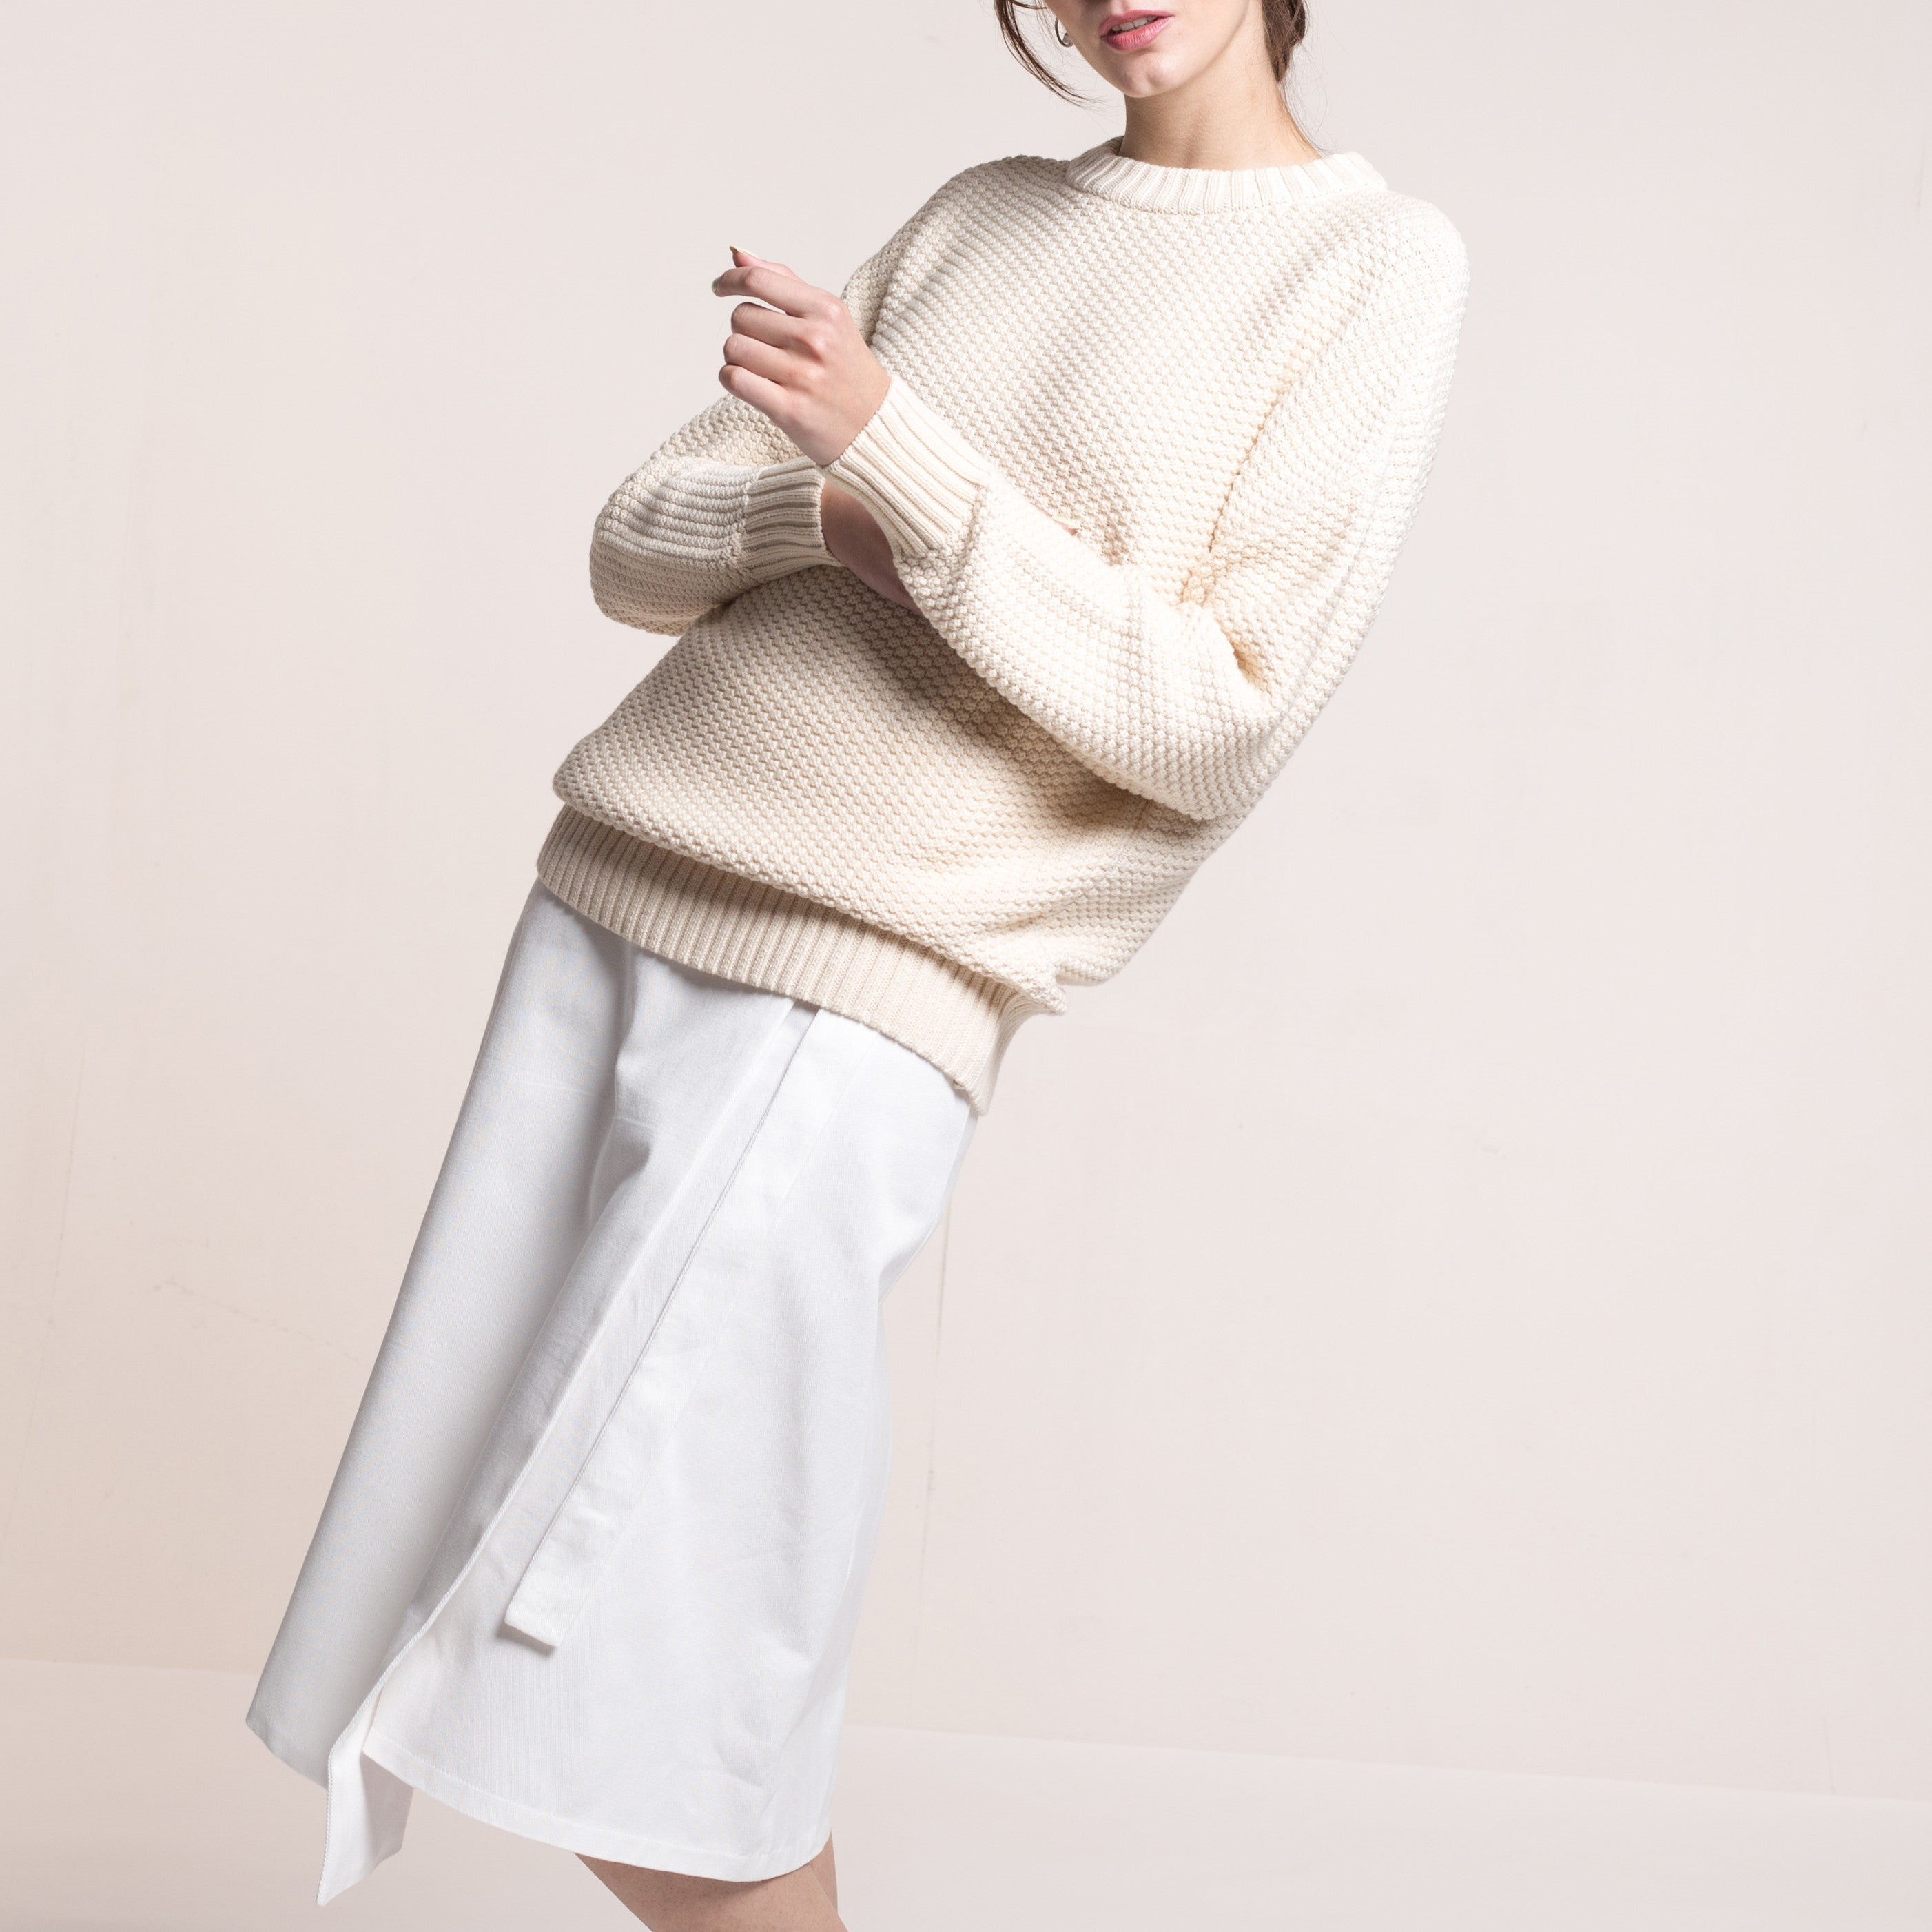 The model wears a natural sustainable organic cotton knitted rice cubes pullover and a white skirt.